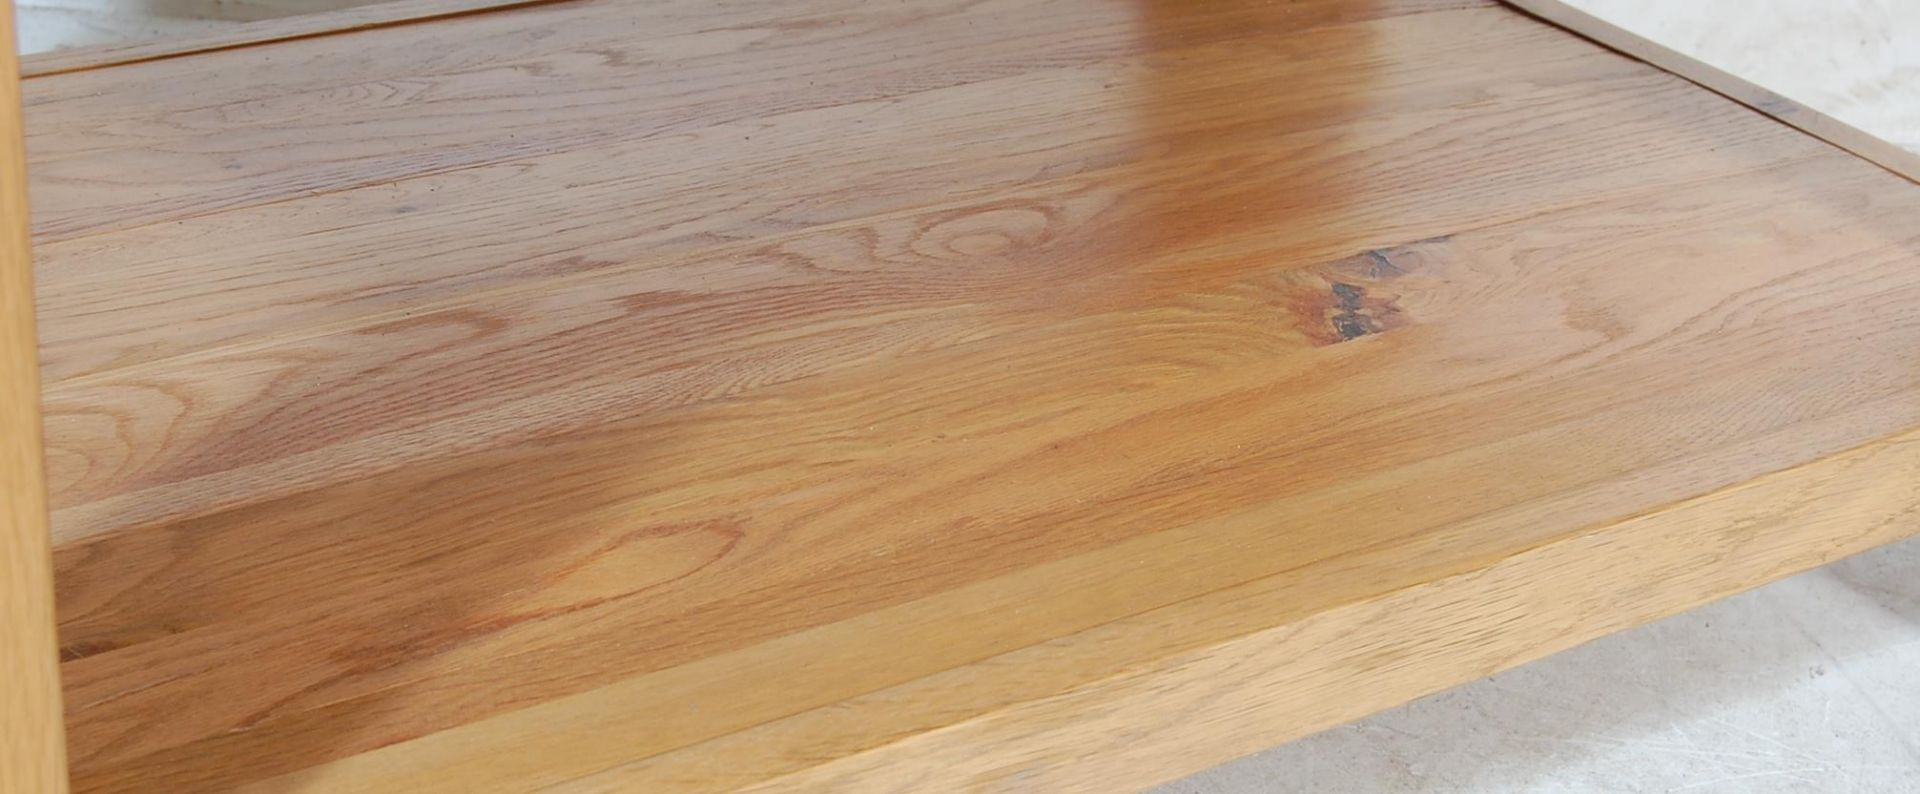 CONTEMPORARY OAK FURNITURE LAND COFFEE TABLE - Image 3 of 3